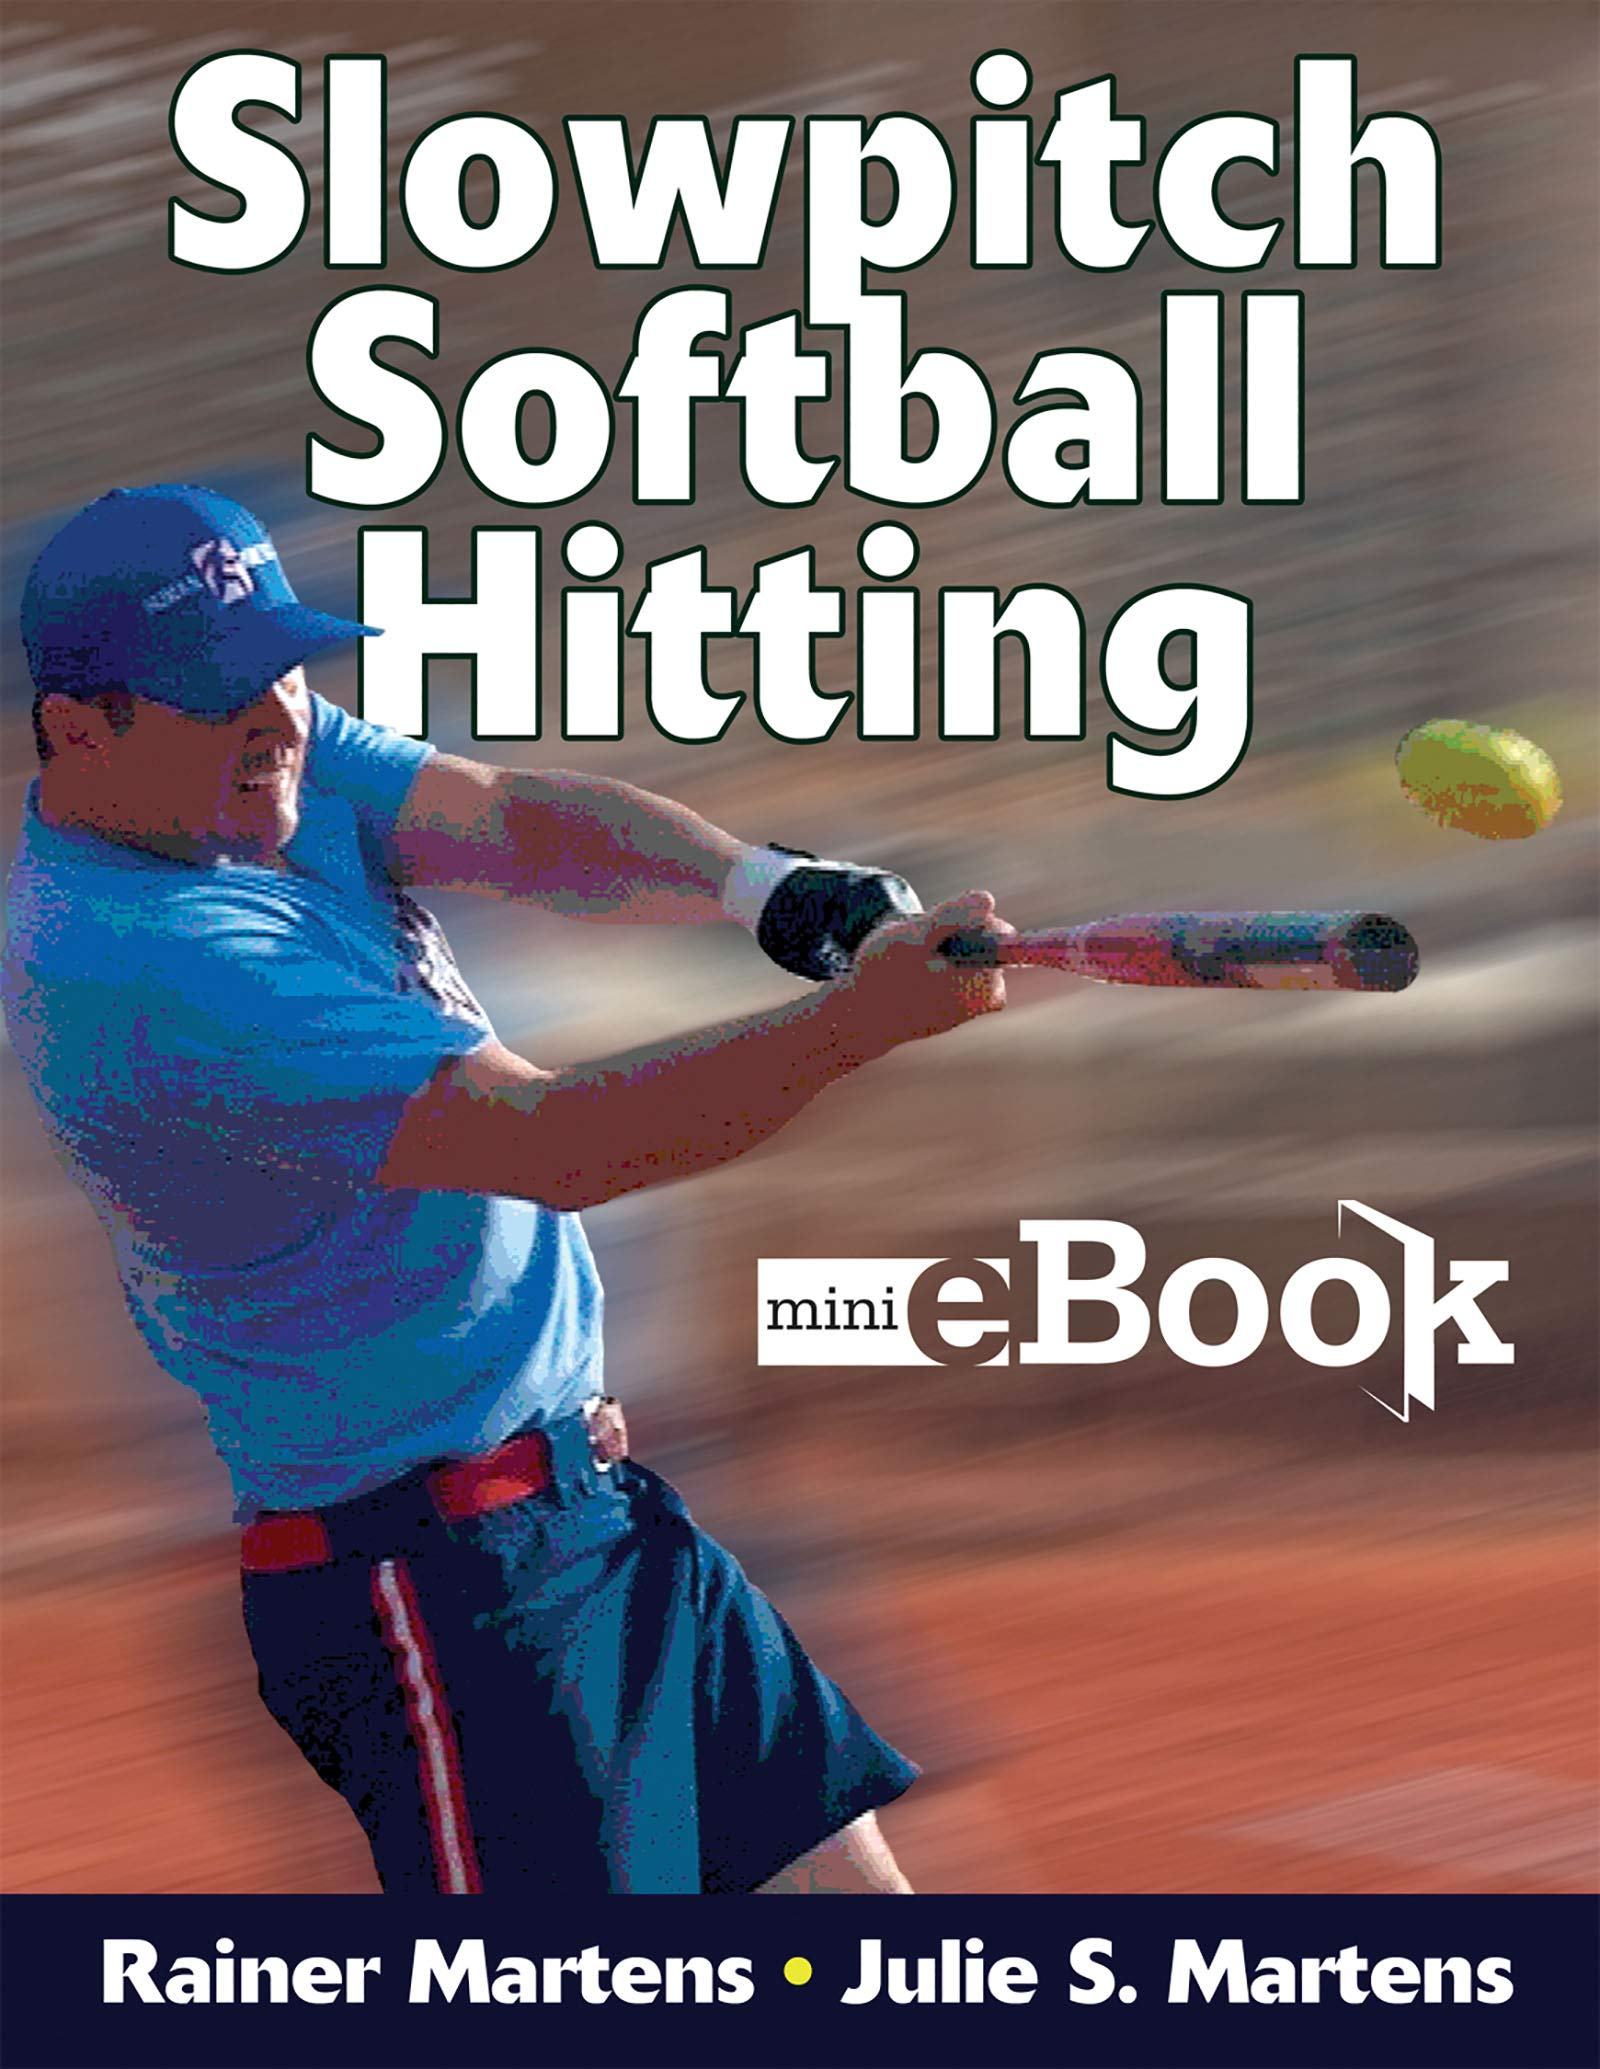 Image OfComplete Guide To Slowpitch Softball: Kindle Edition With Audio/Video